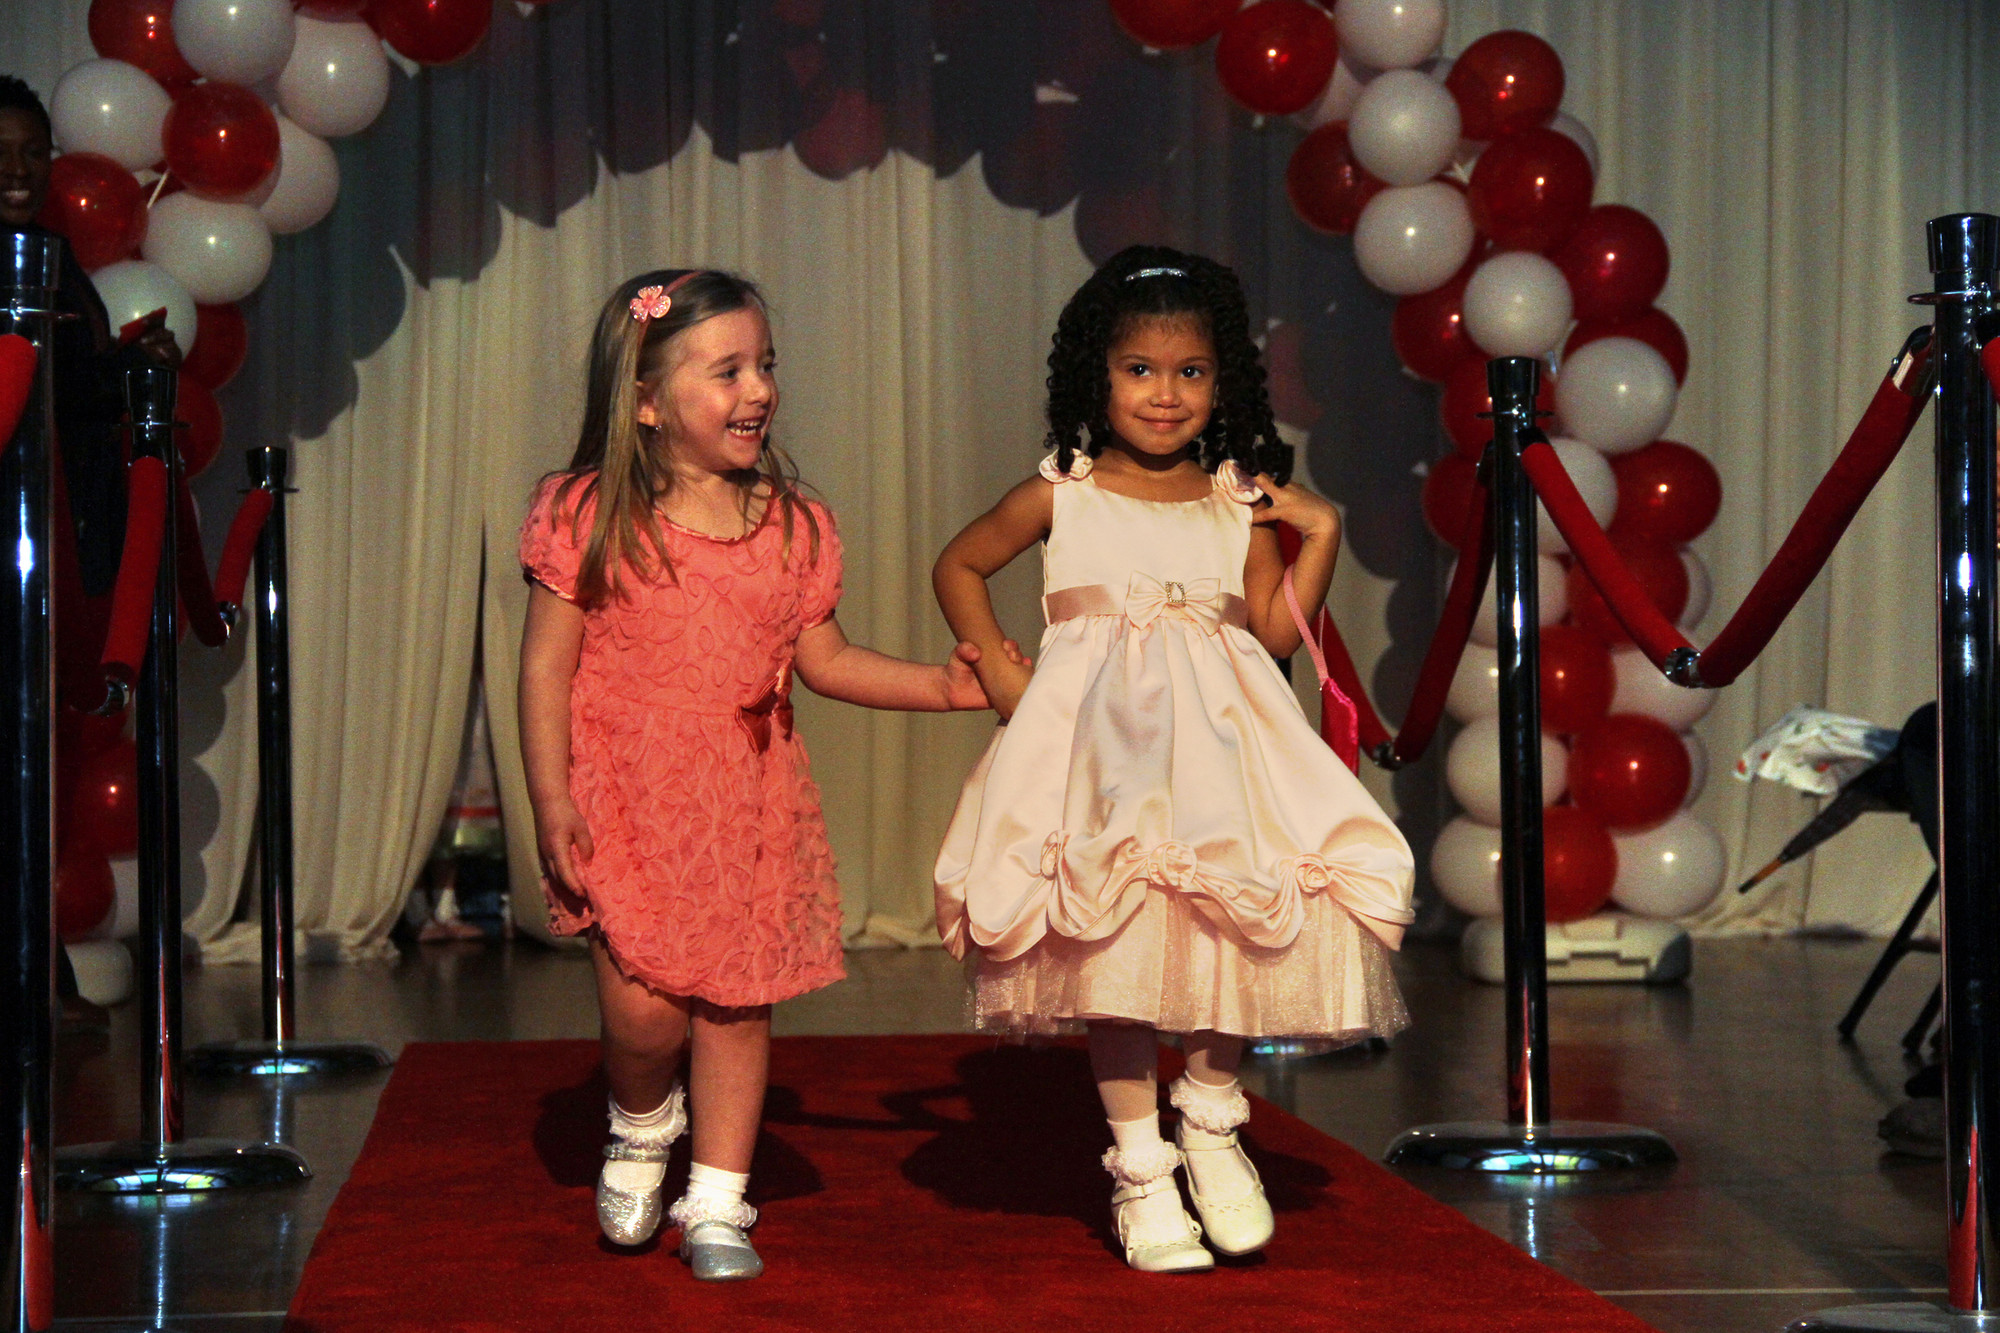 Rosann Passalacqua and Noell Crespo were models in Holy Name of Mary School's fashion show on April 12 in the auditorium.